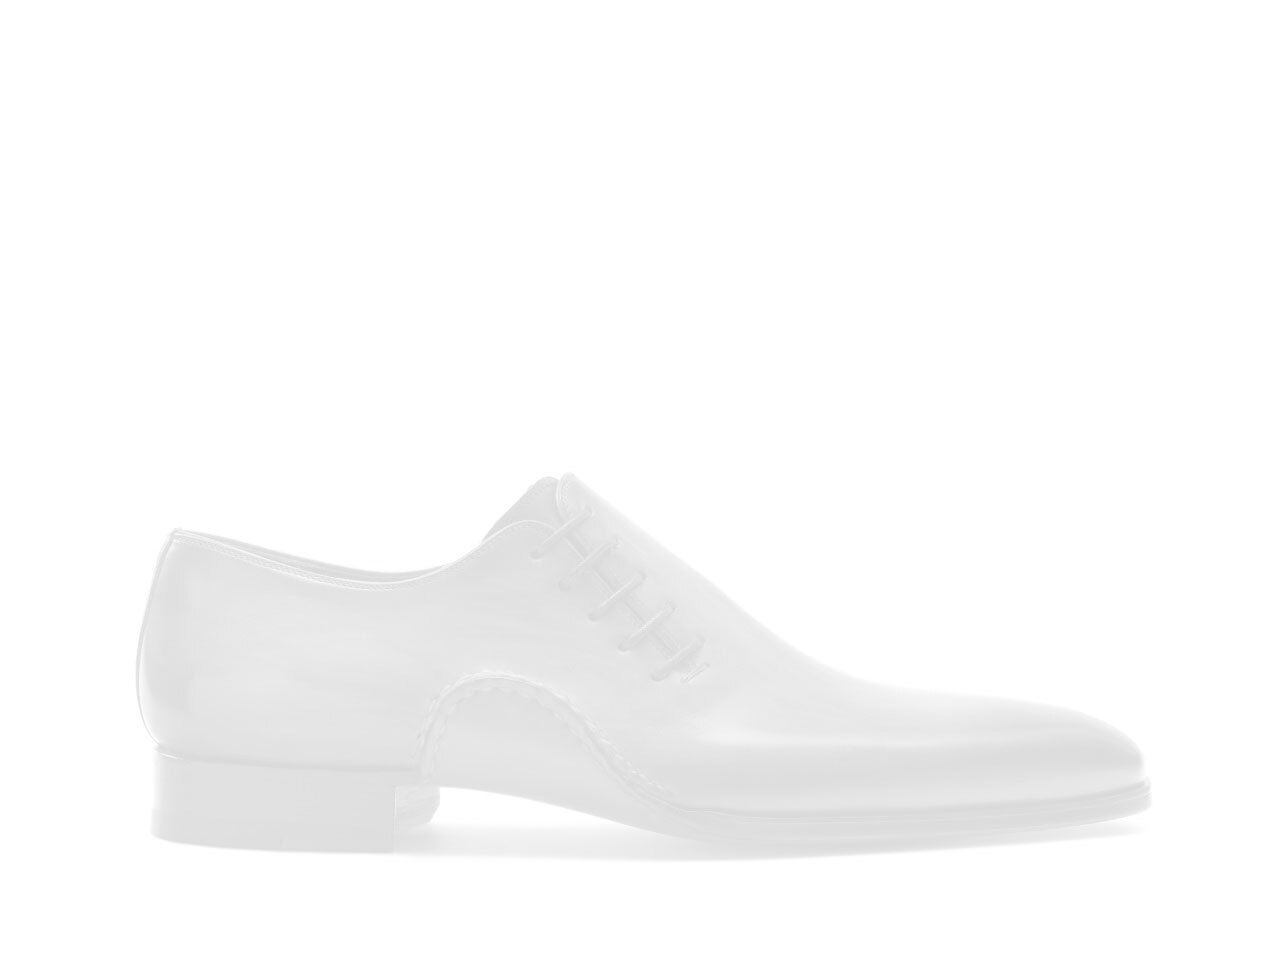 Side view of the Magnanni Corey II Torba Suede Men's Oxford Shoes